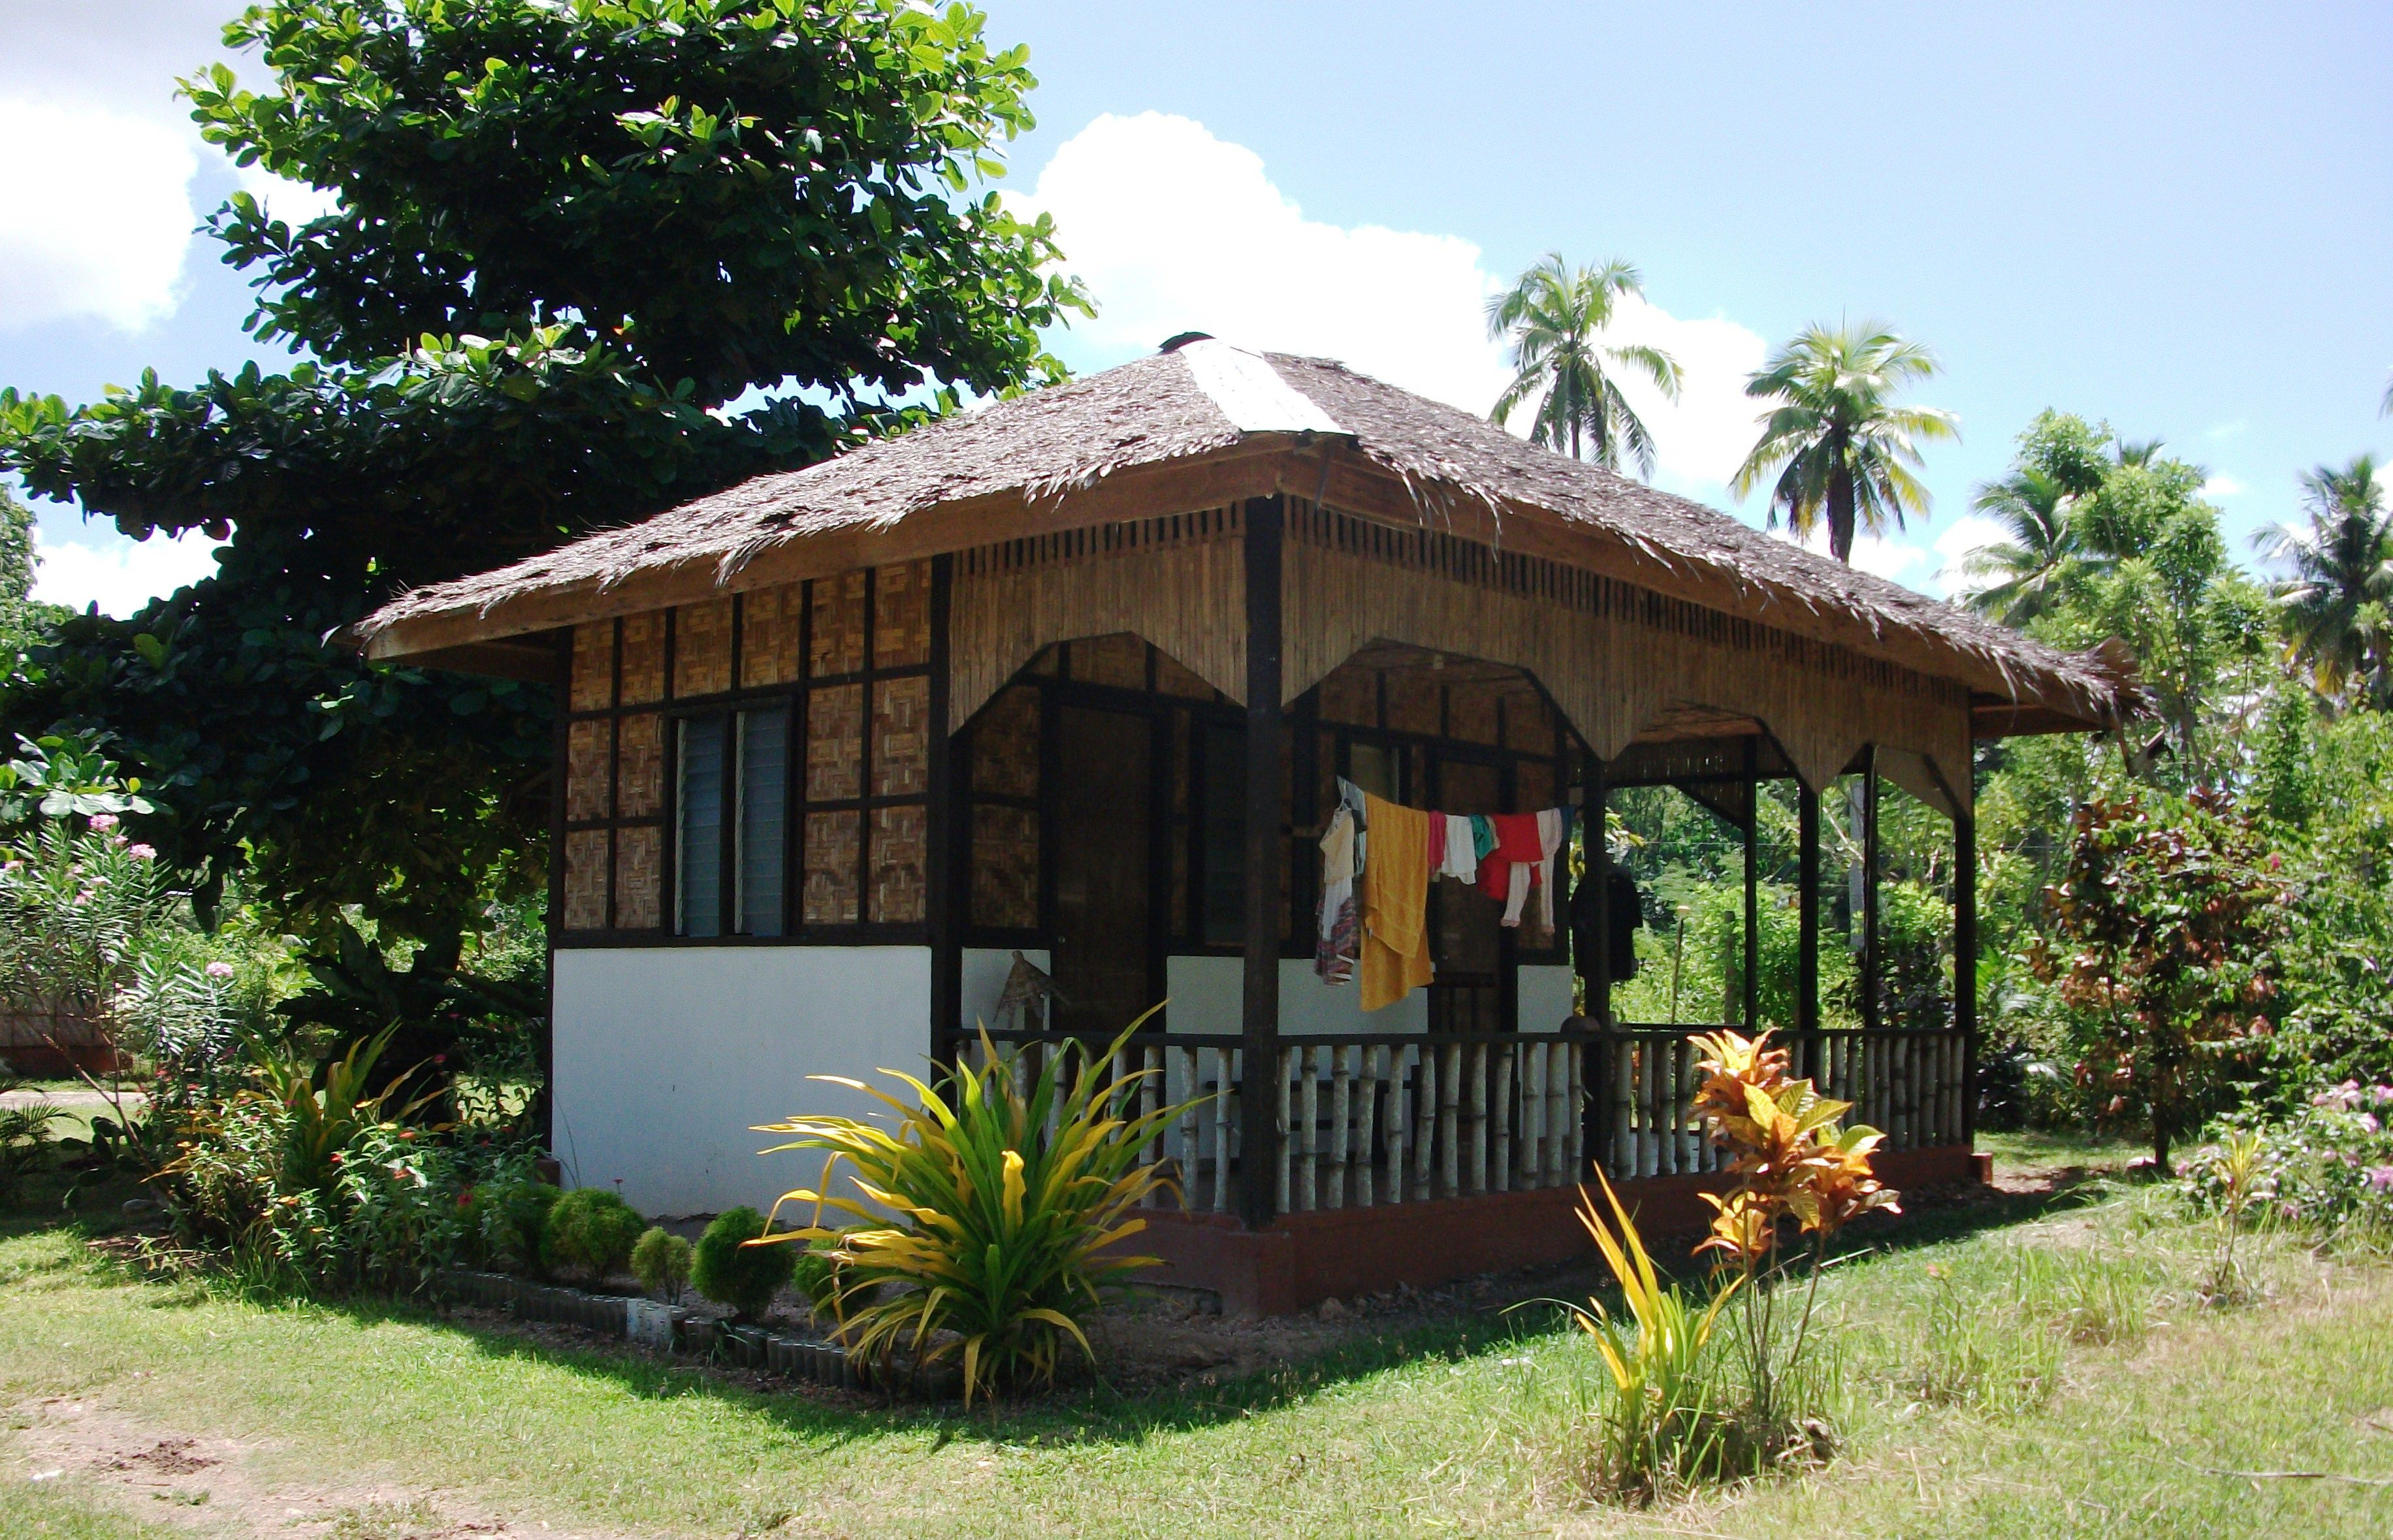 Pin By Gimini On Bahay Kubo Philippines House Design Simple House Design House Design Photos